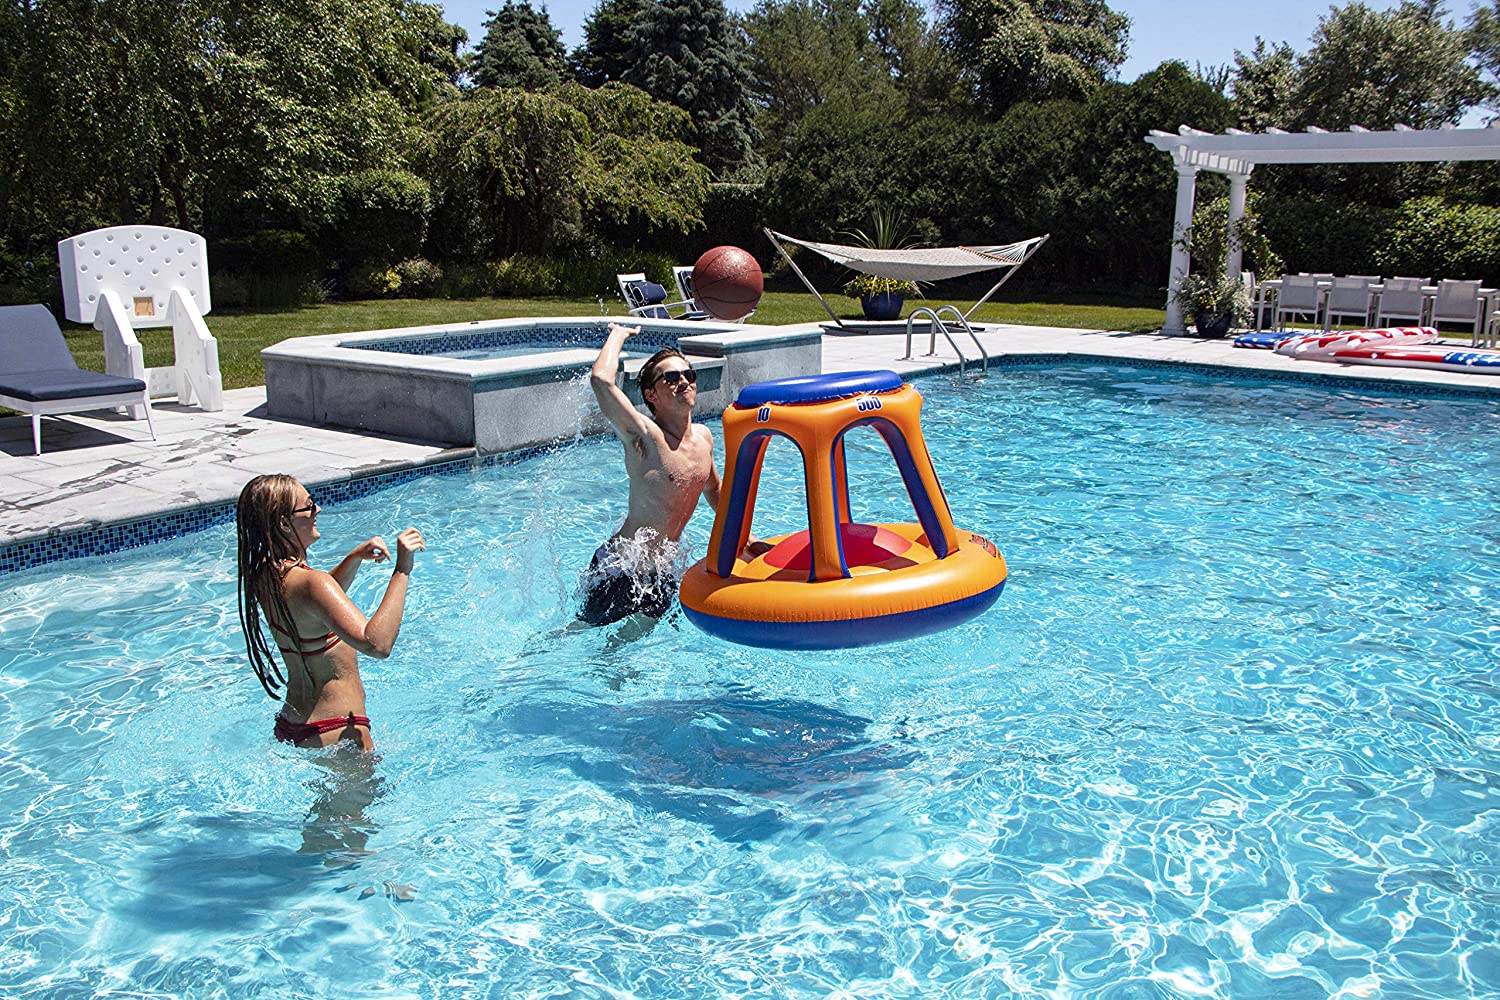 Swimline 90285 Giant Shootball Floating Pool Basketball Game, 1-Pack, Orange/Blue